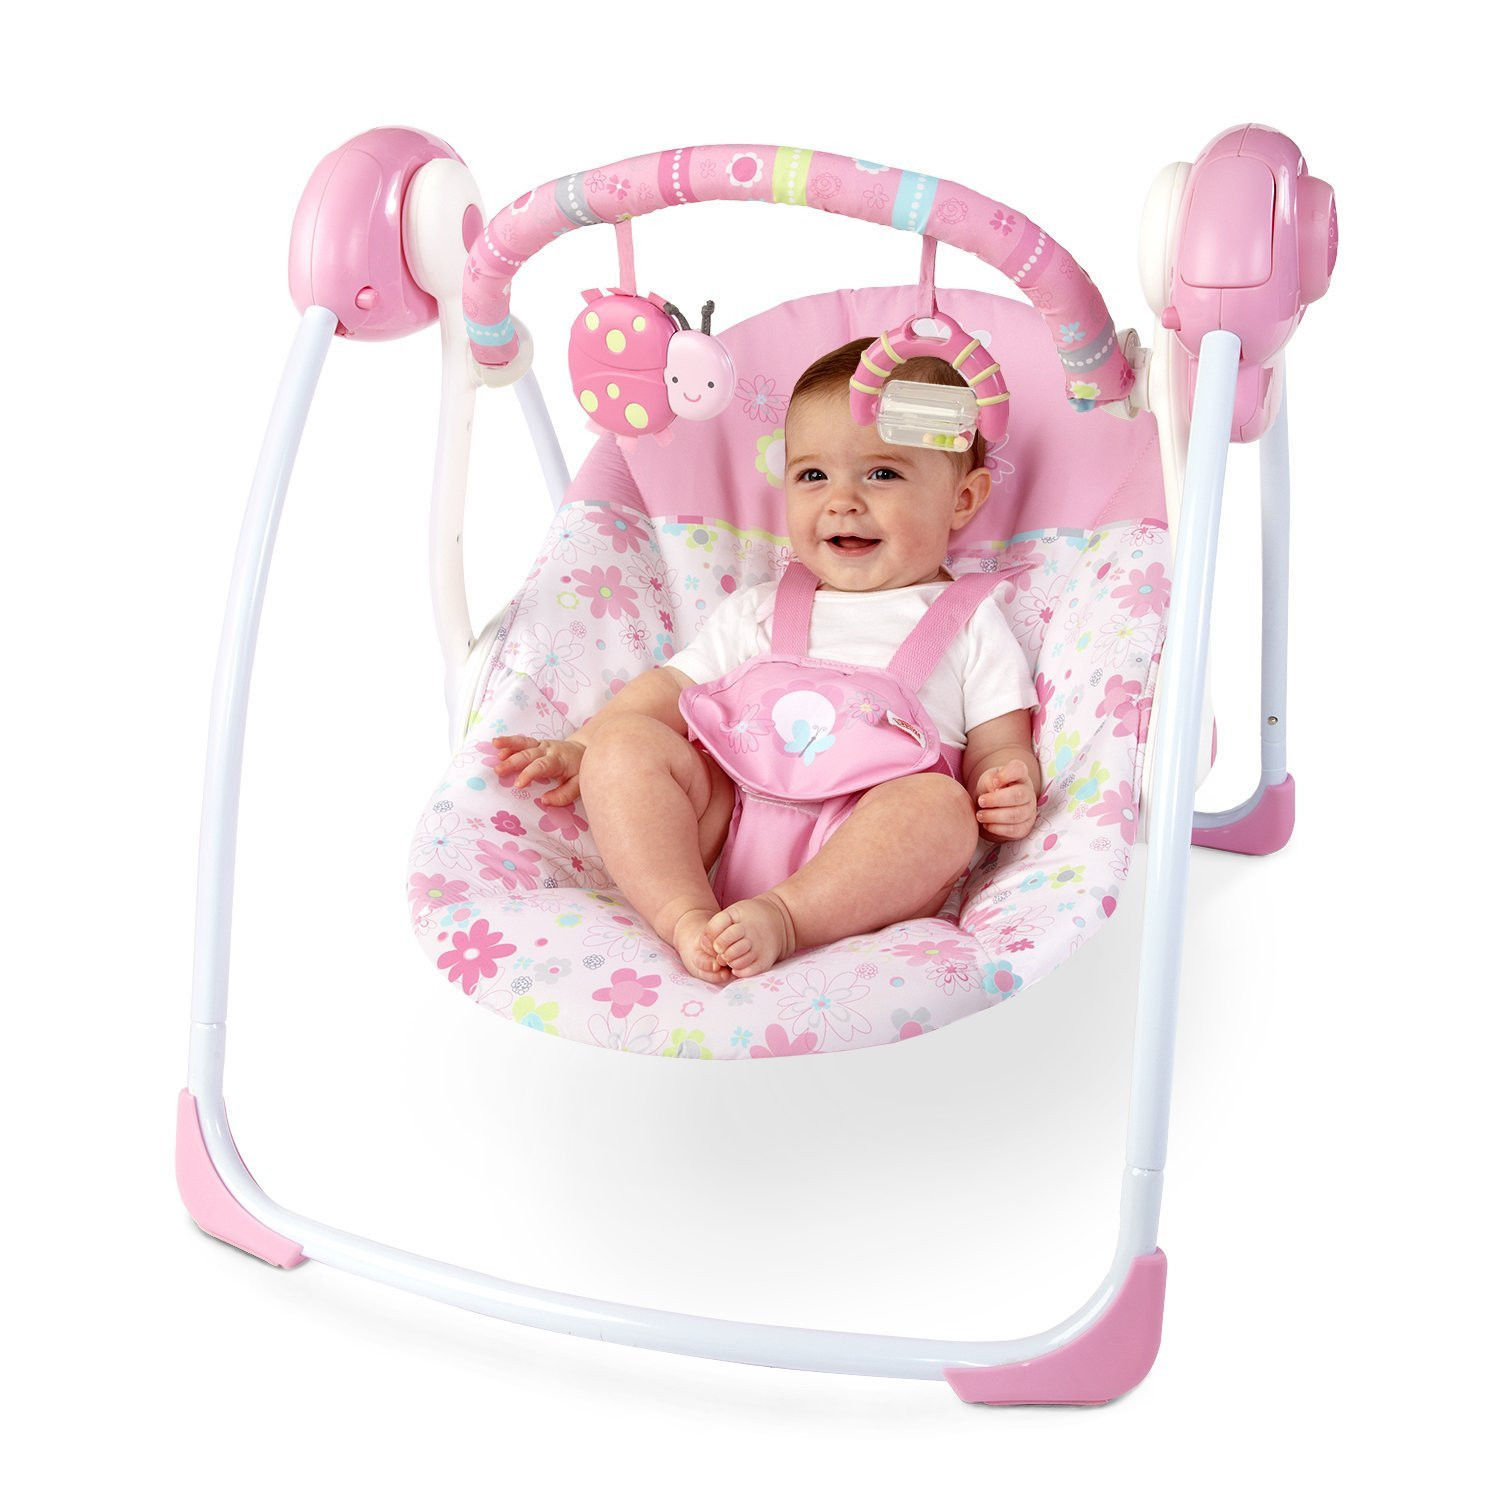 Baby Girl Portable Pink Swing 6 speeds & 2 reclines Mobile